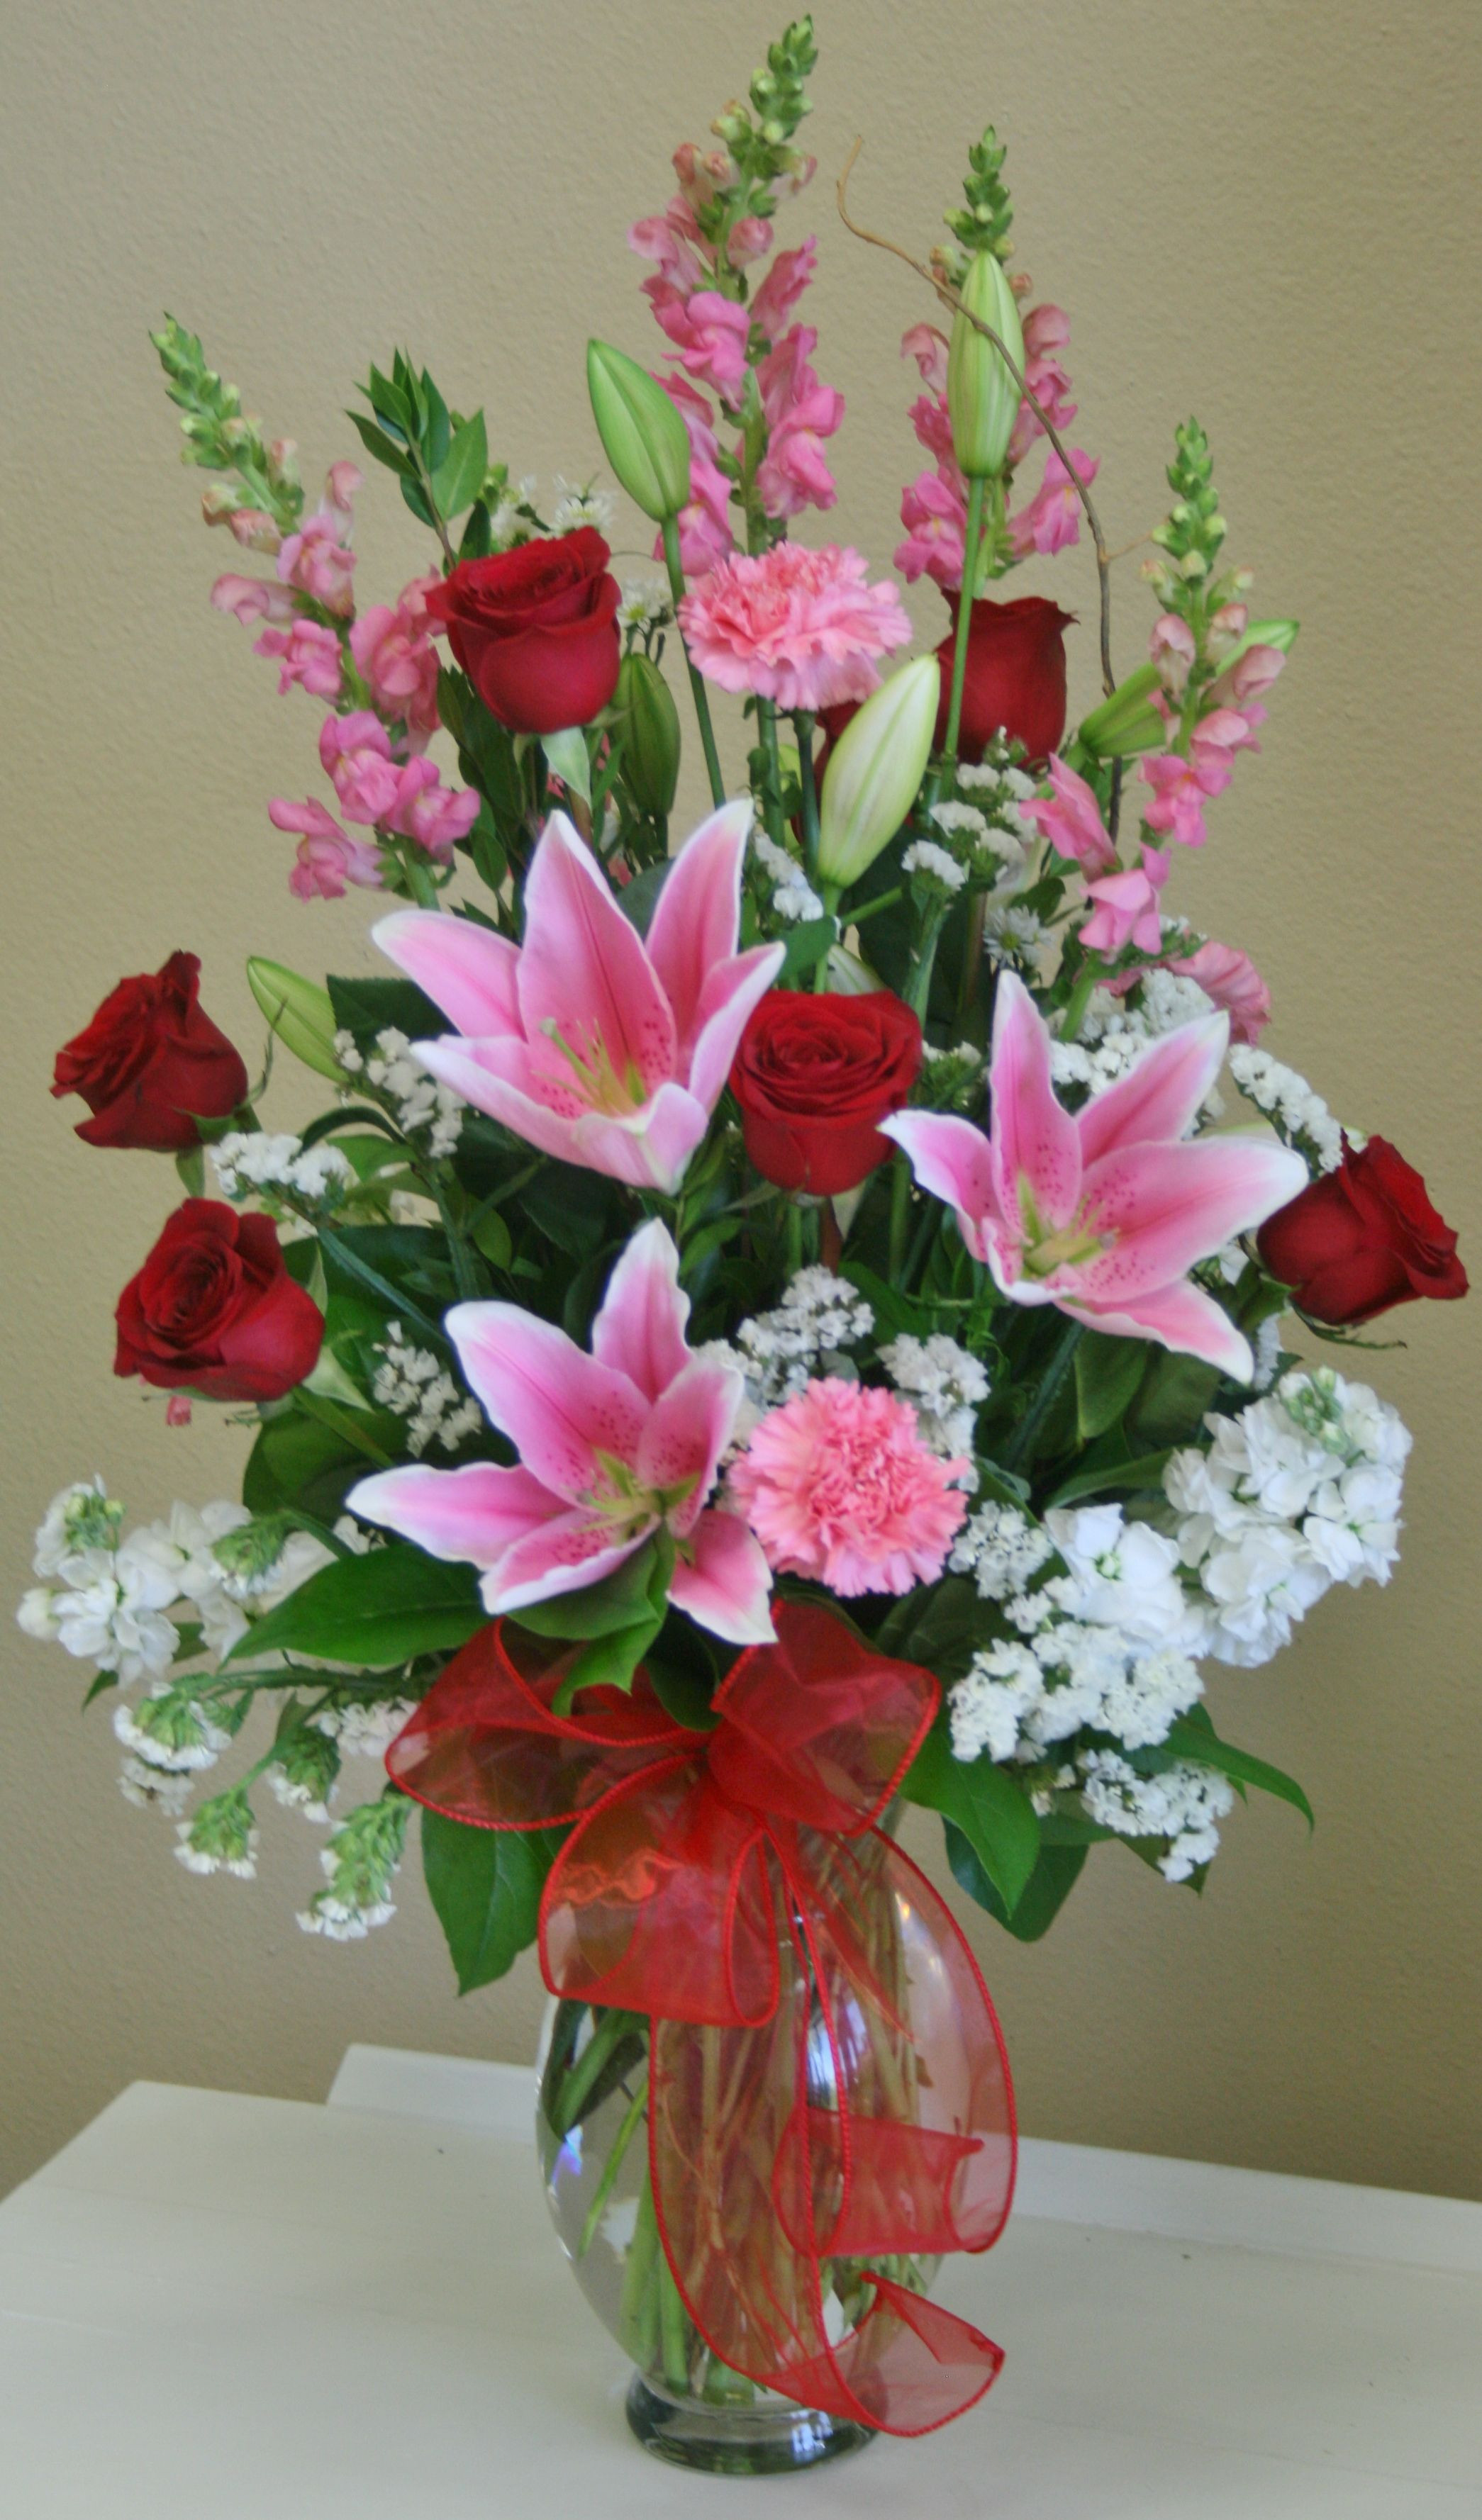 A romantic red white and pink flower arrangement by your local Riverside florist Willow Branch Florist of Riverside